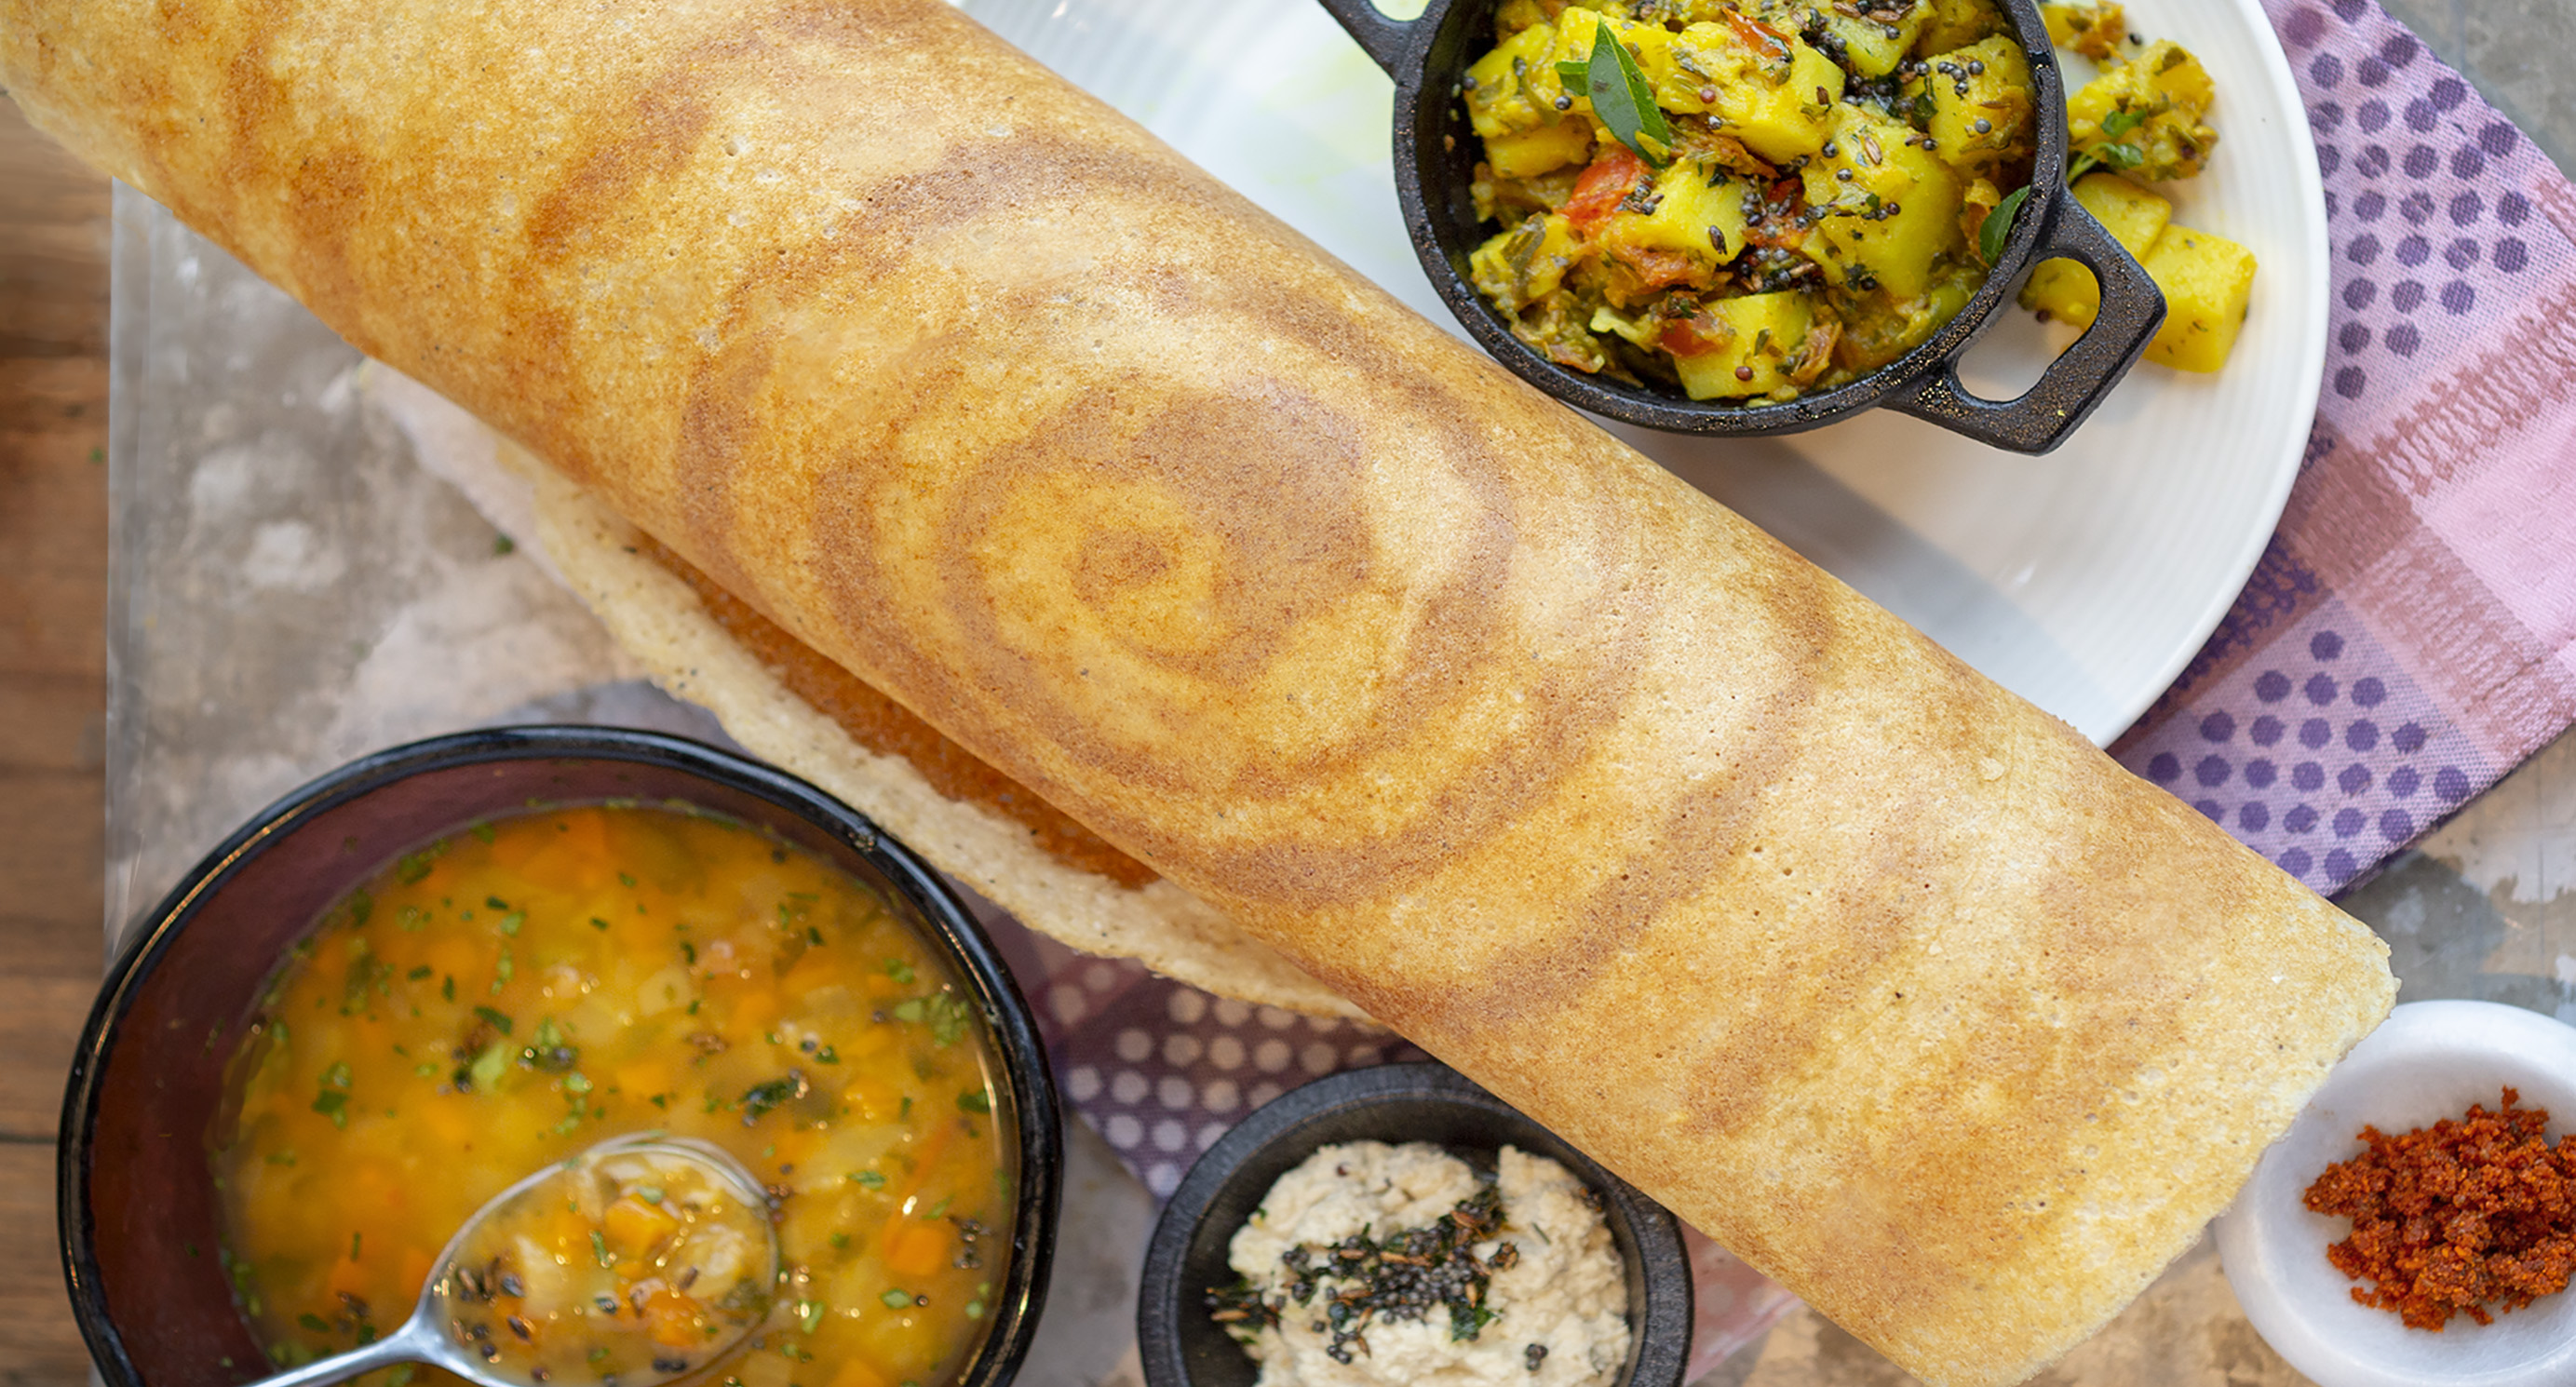 A plate with a dosa, sambar, and more.